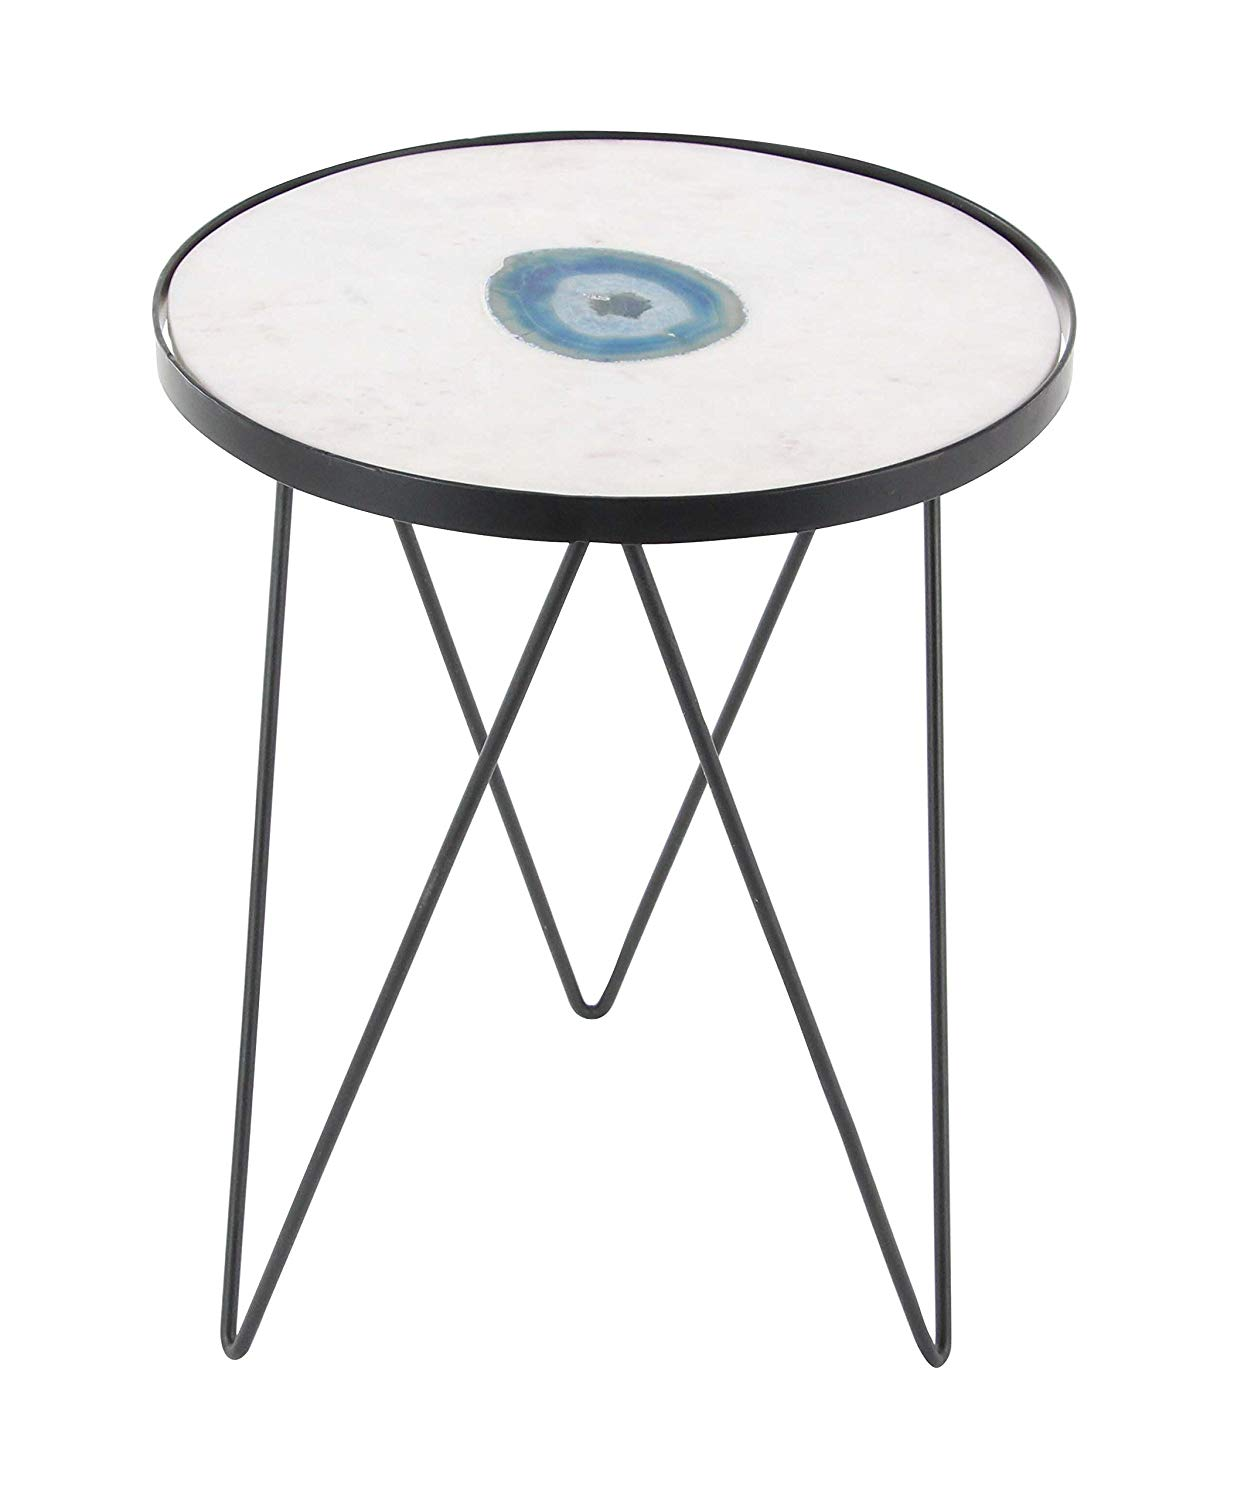 charming white marble and metal round accent table small for faux tablecloth pedestal wooden unfinished wood ideas covers decorating threshold side full size semi circle sage